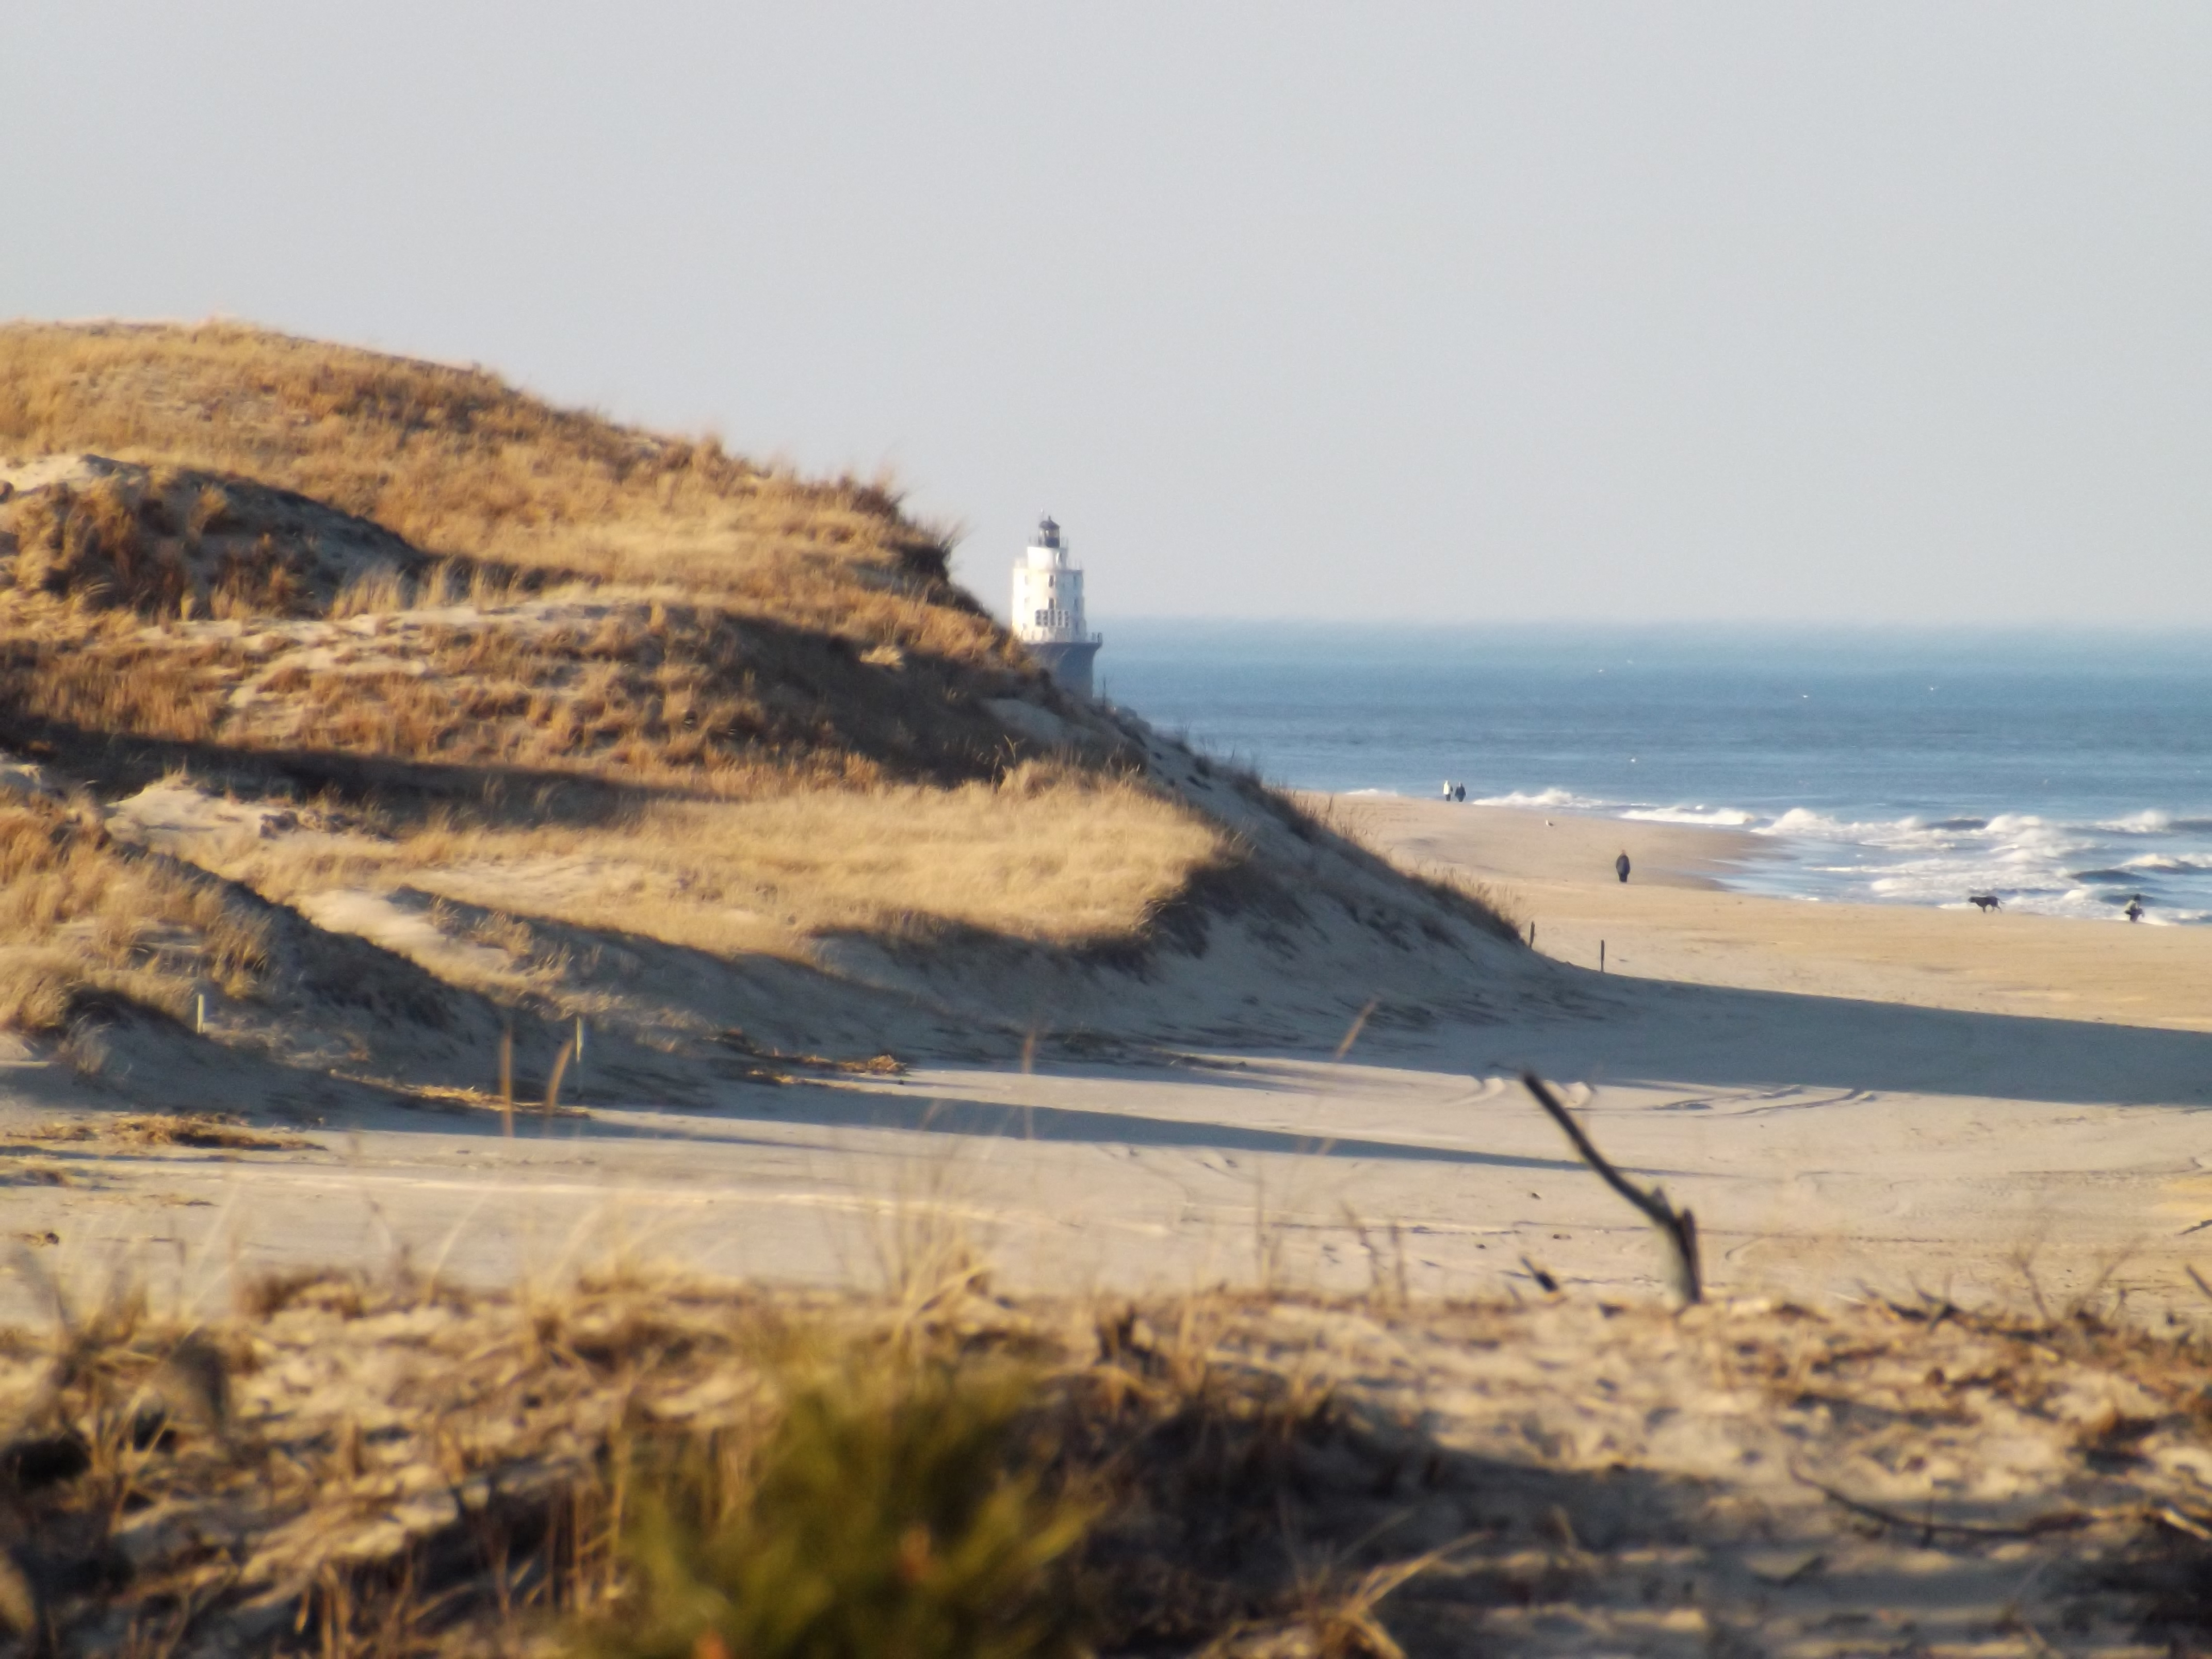 Cape Henlopen, great dune, delaware, sussex county, lewes, delaware state parks, harbor of safe refuge, delaware breakwater lighthouse